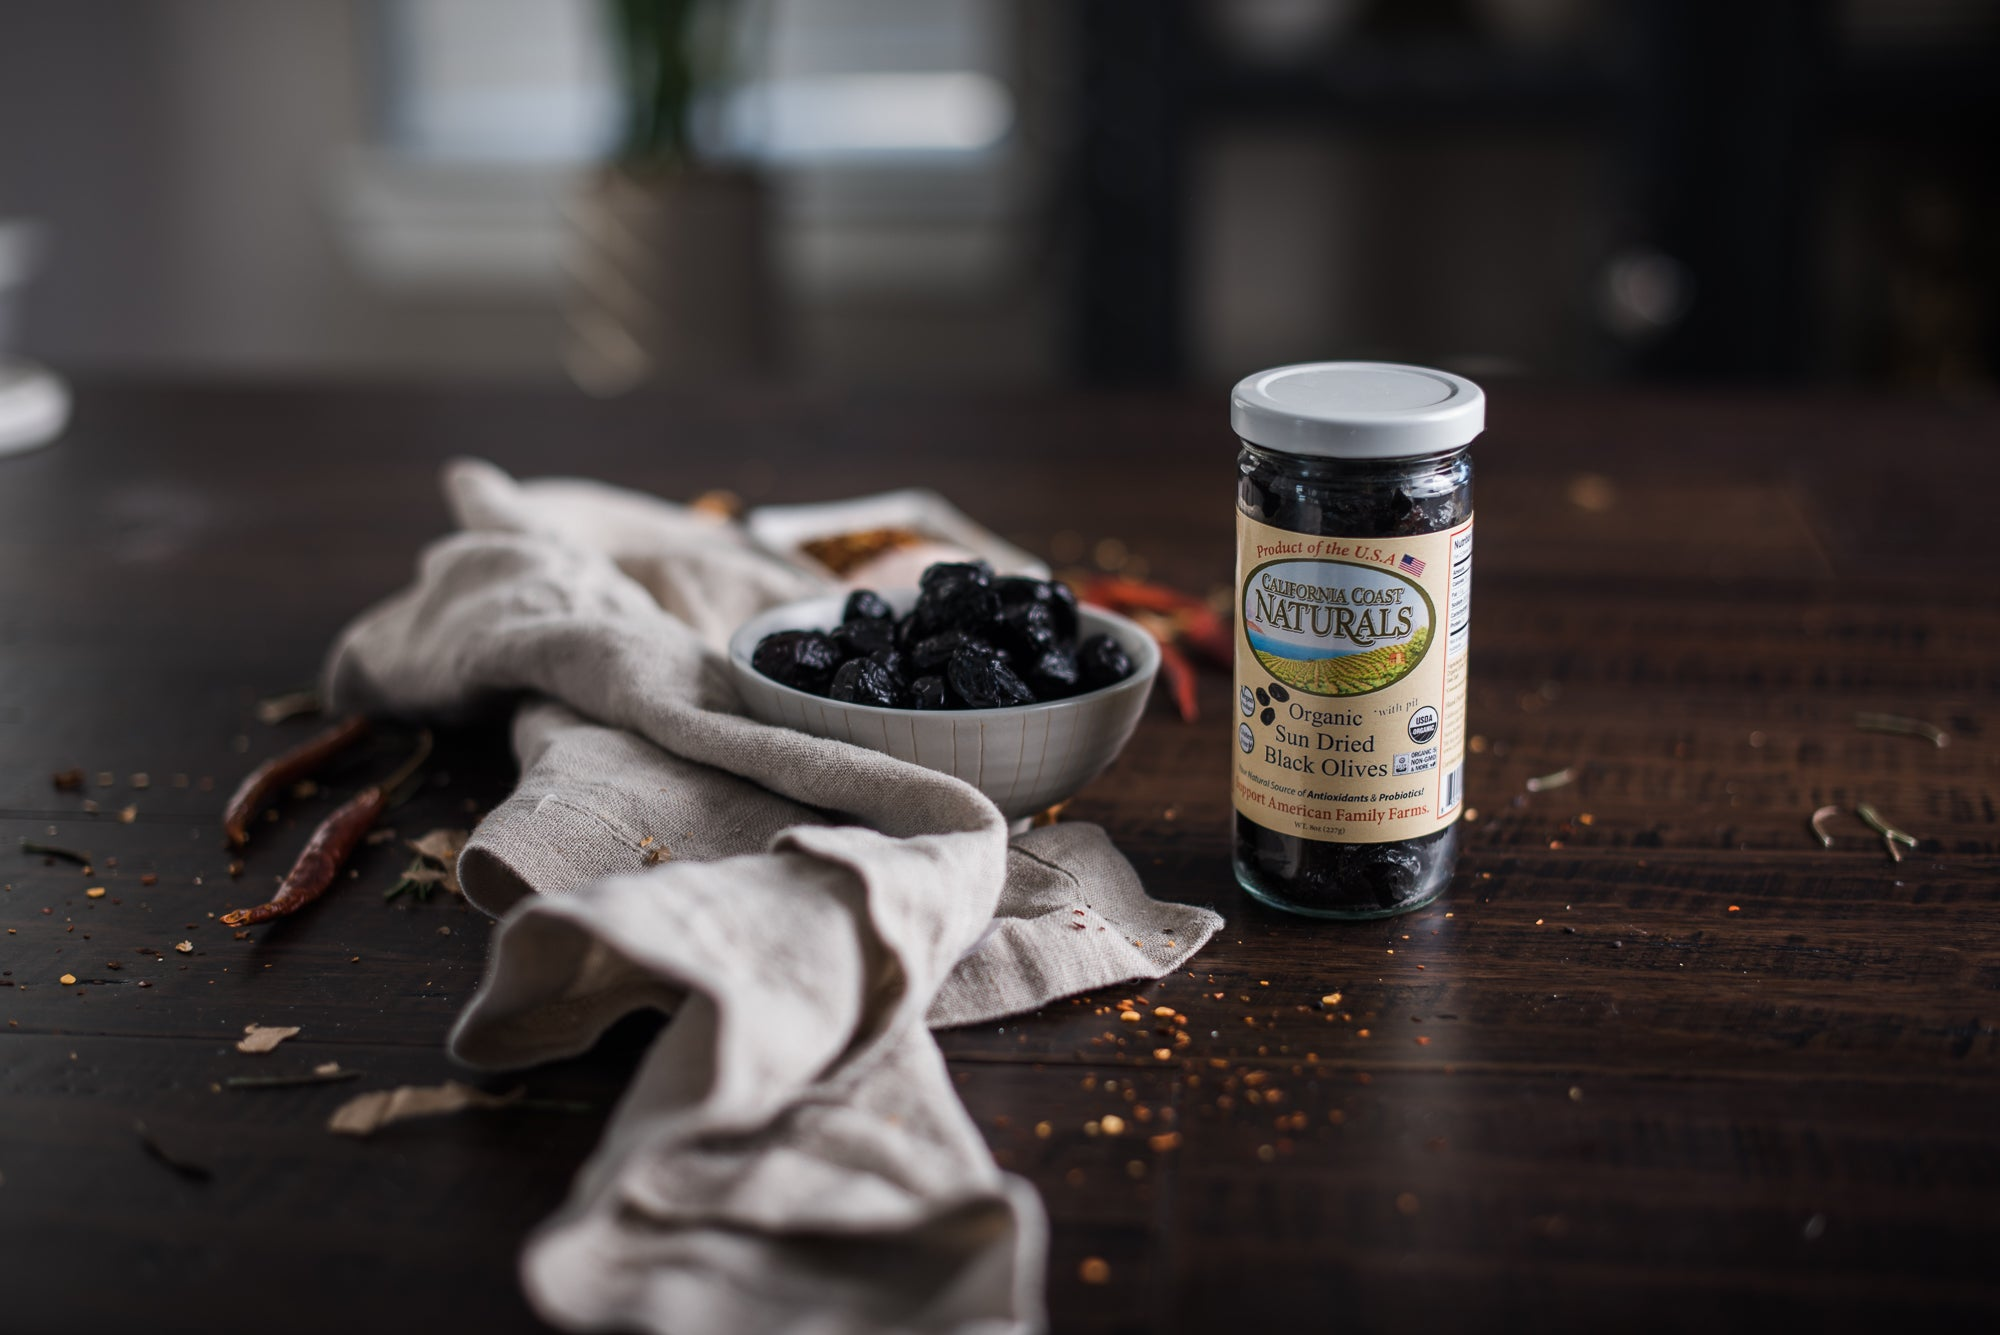 <a target='_blank' href='https://amzn.to/2XD6cQV'>California Coast Naturals Sun Dried Black Olives</a>